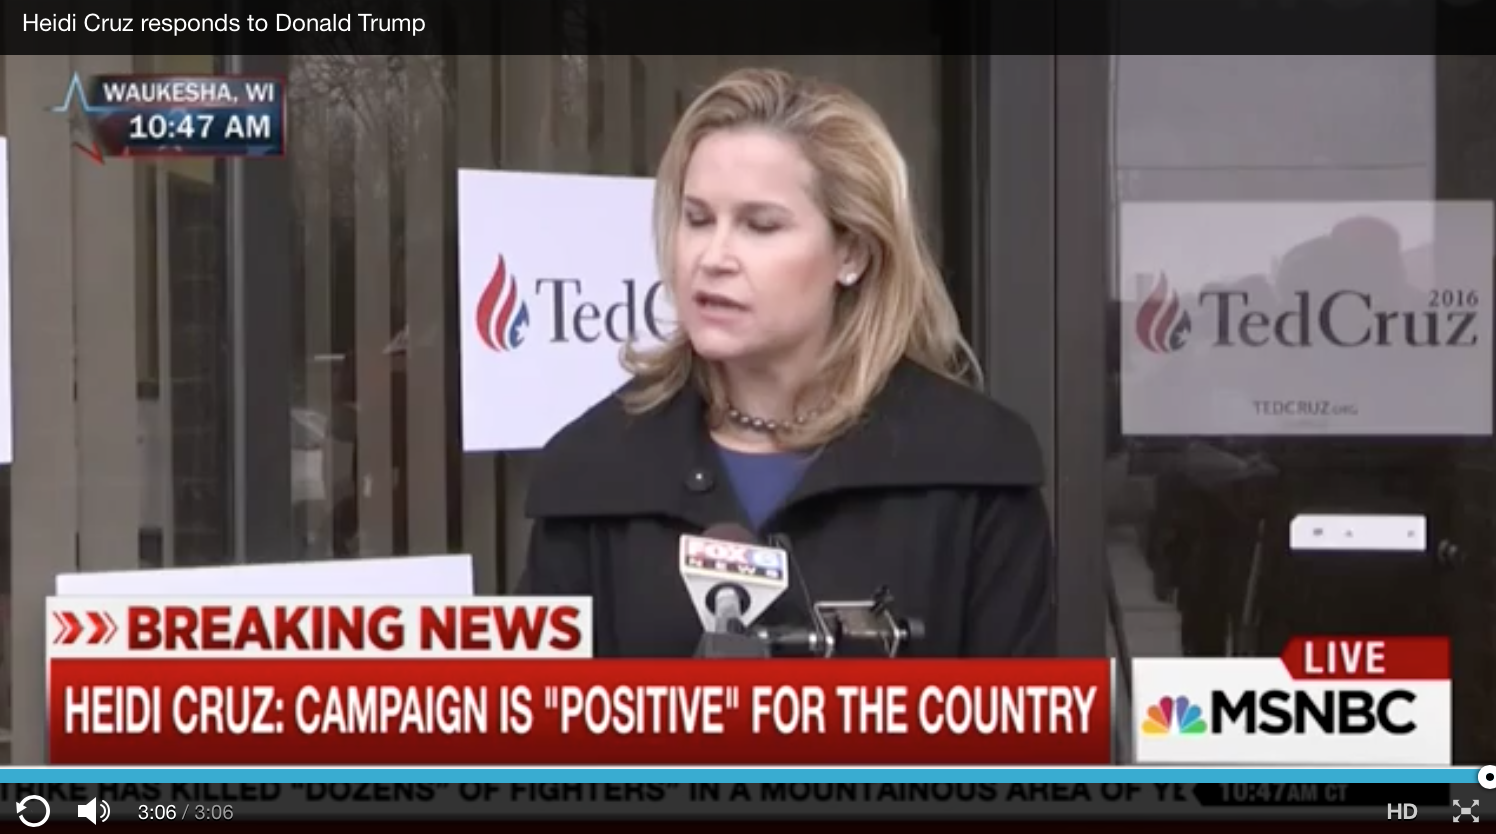 [VIDEO] Heidi Cruz (And Ted Cruz) Take The Bait And Responds To The Donald's Attack